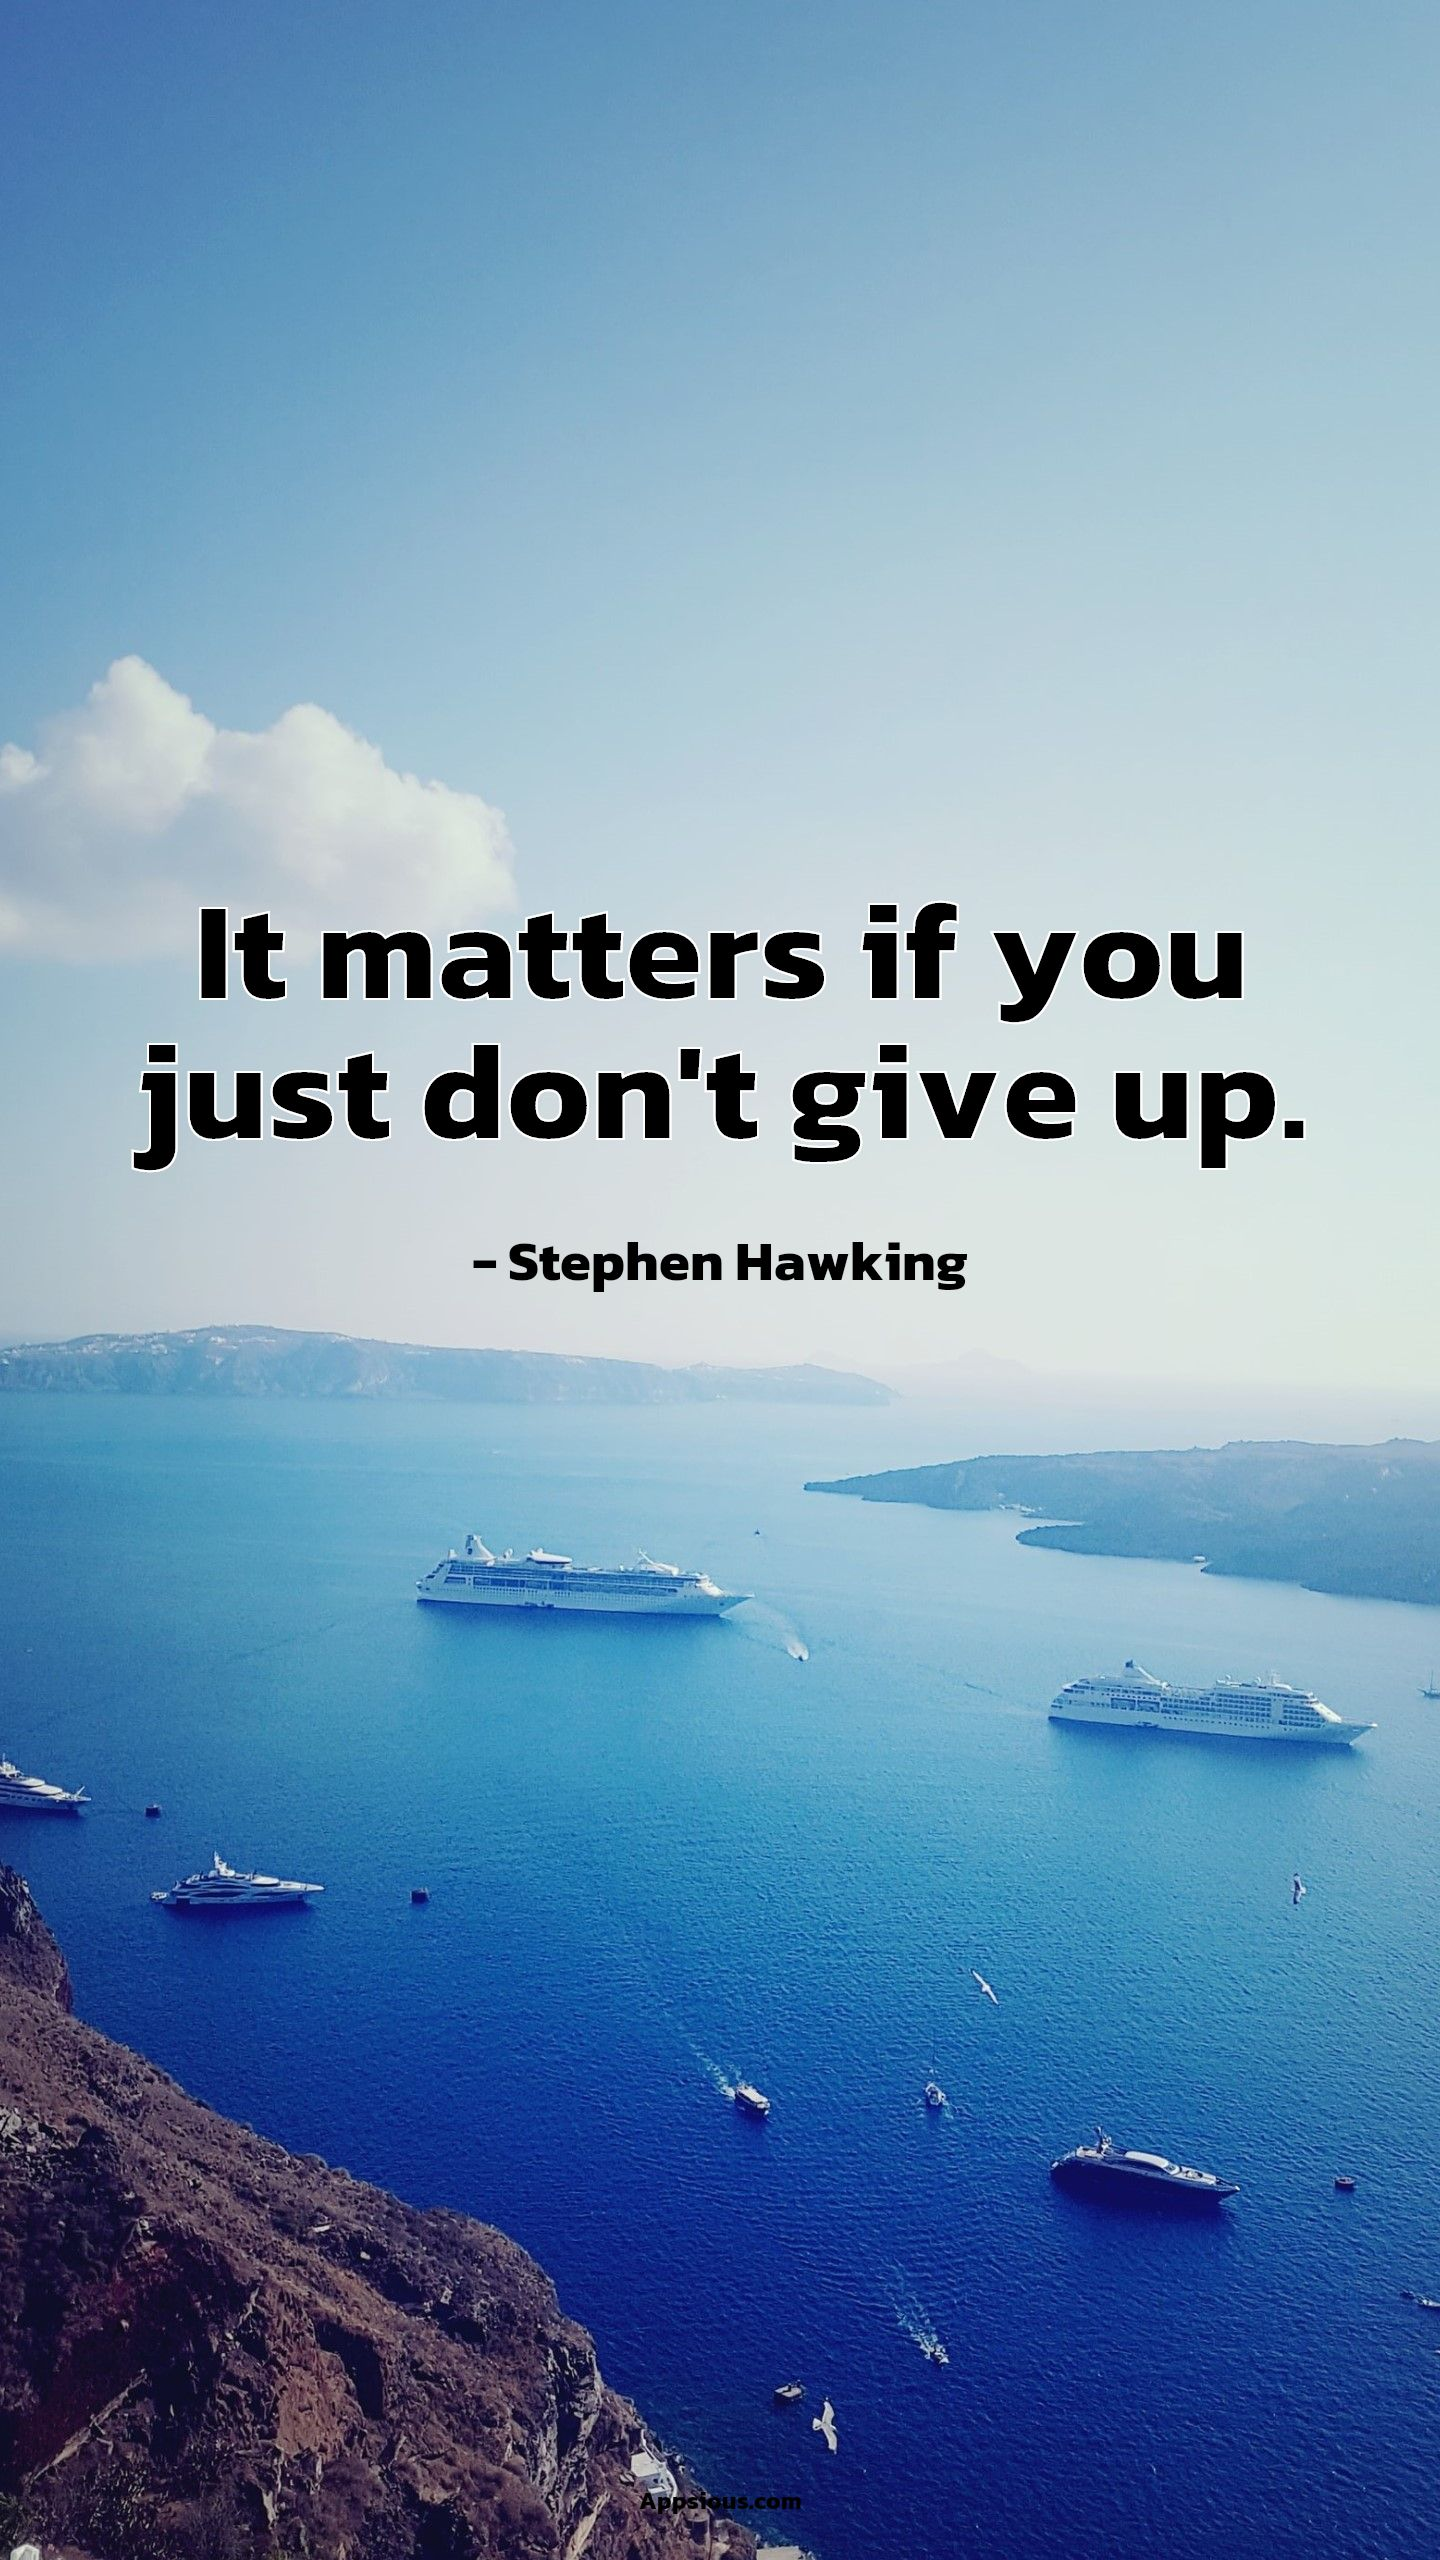 It matters if you just don't give up.